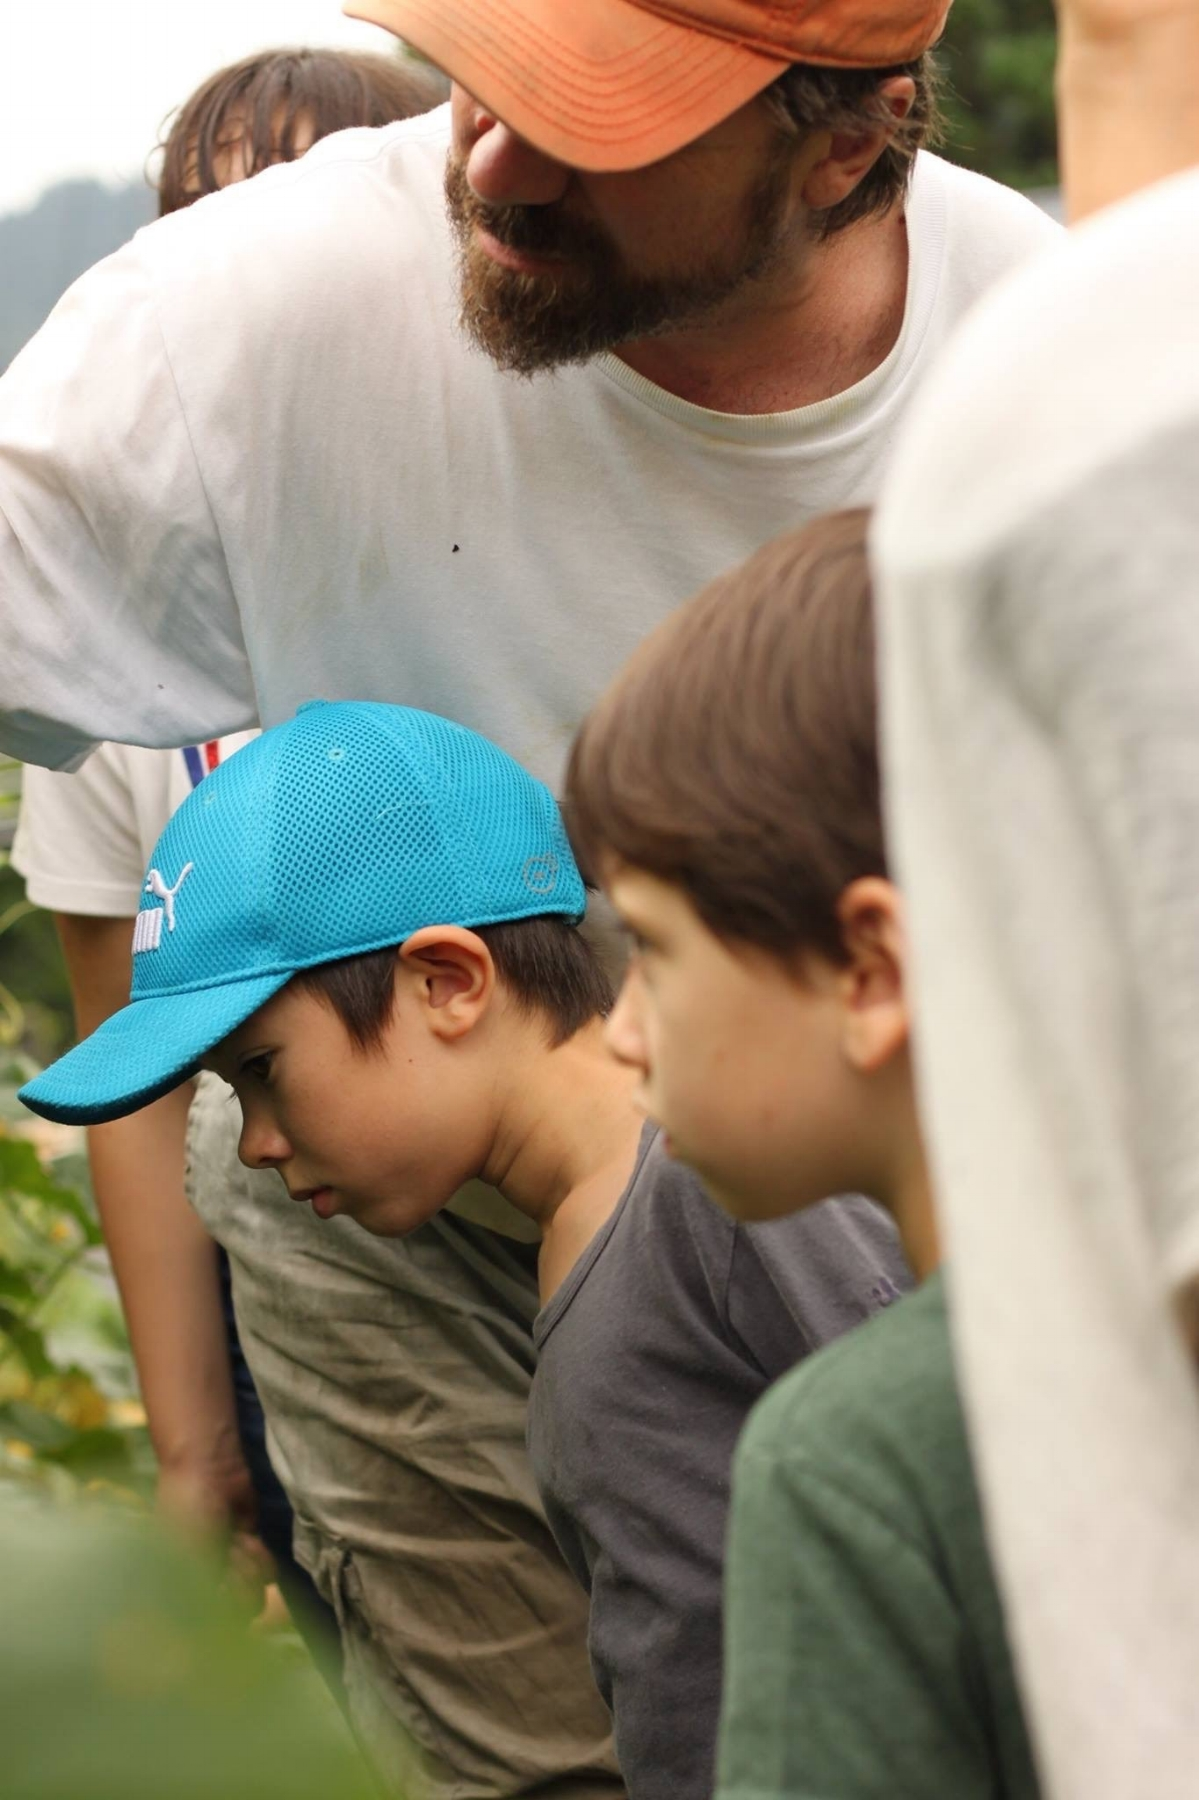 Sharing our wonder of the farm with children is one of our favorite things. How better to inspire the next generation than provide a foundation in sensible food systems.